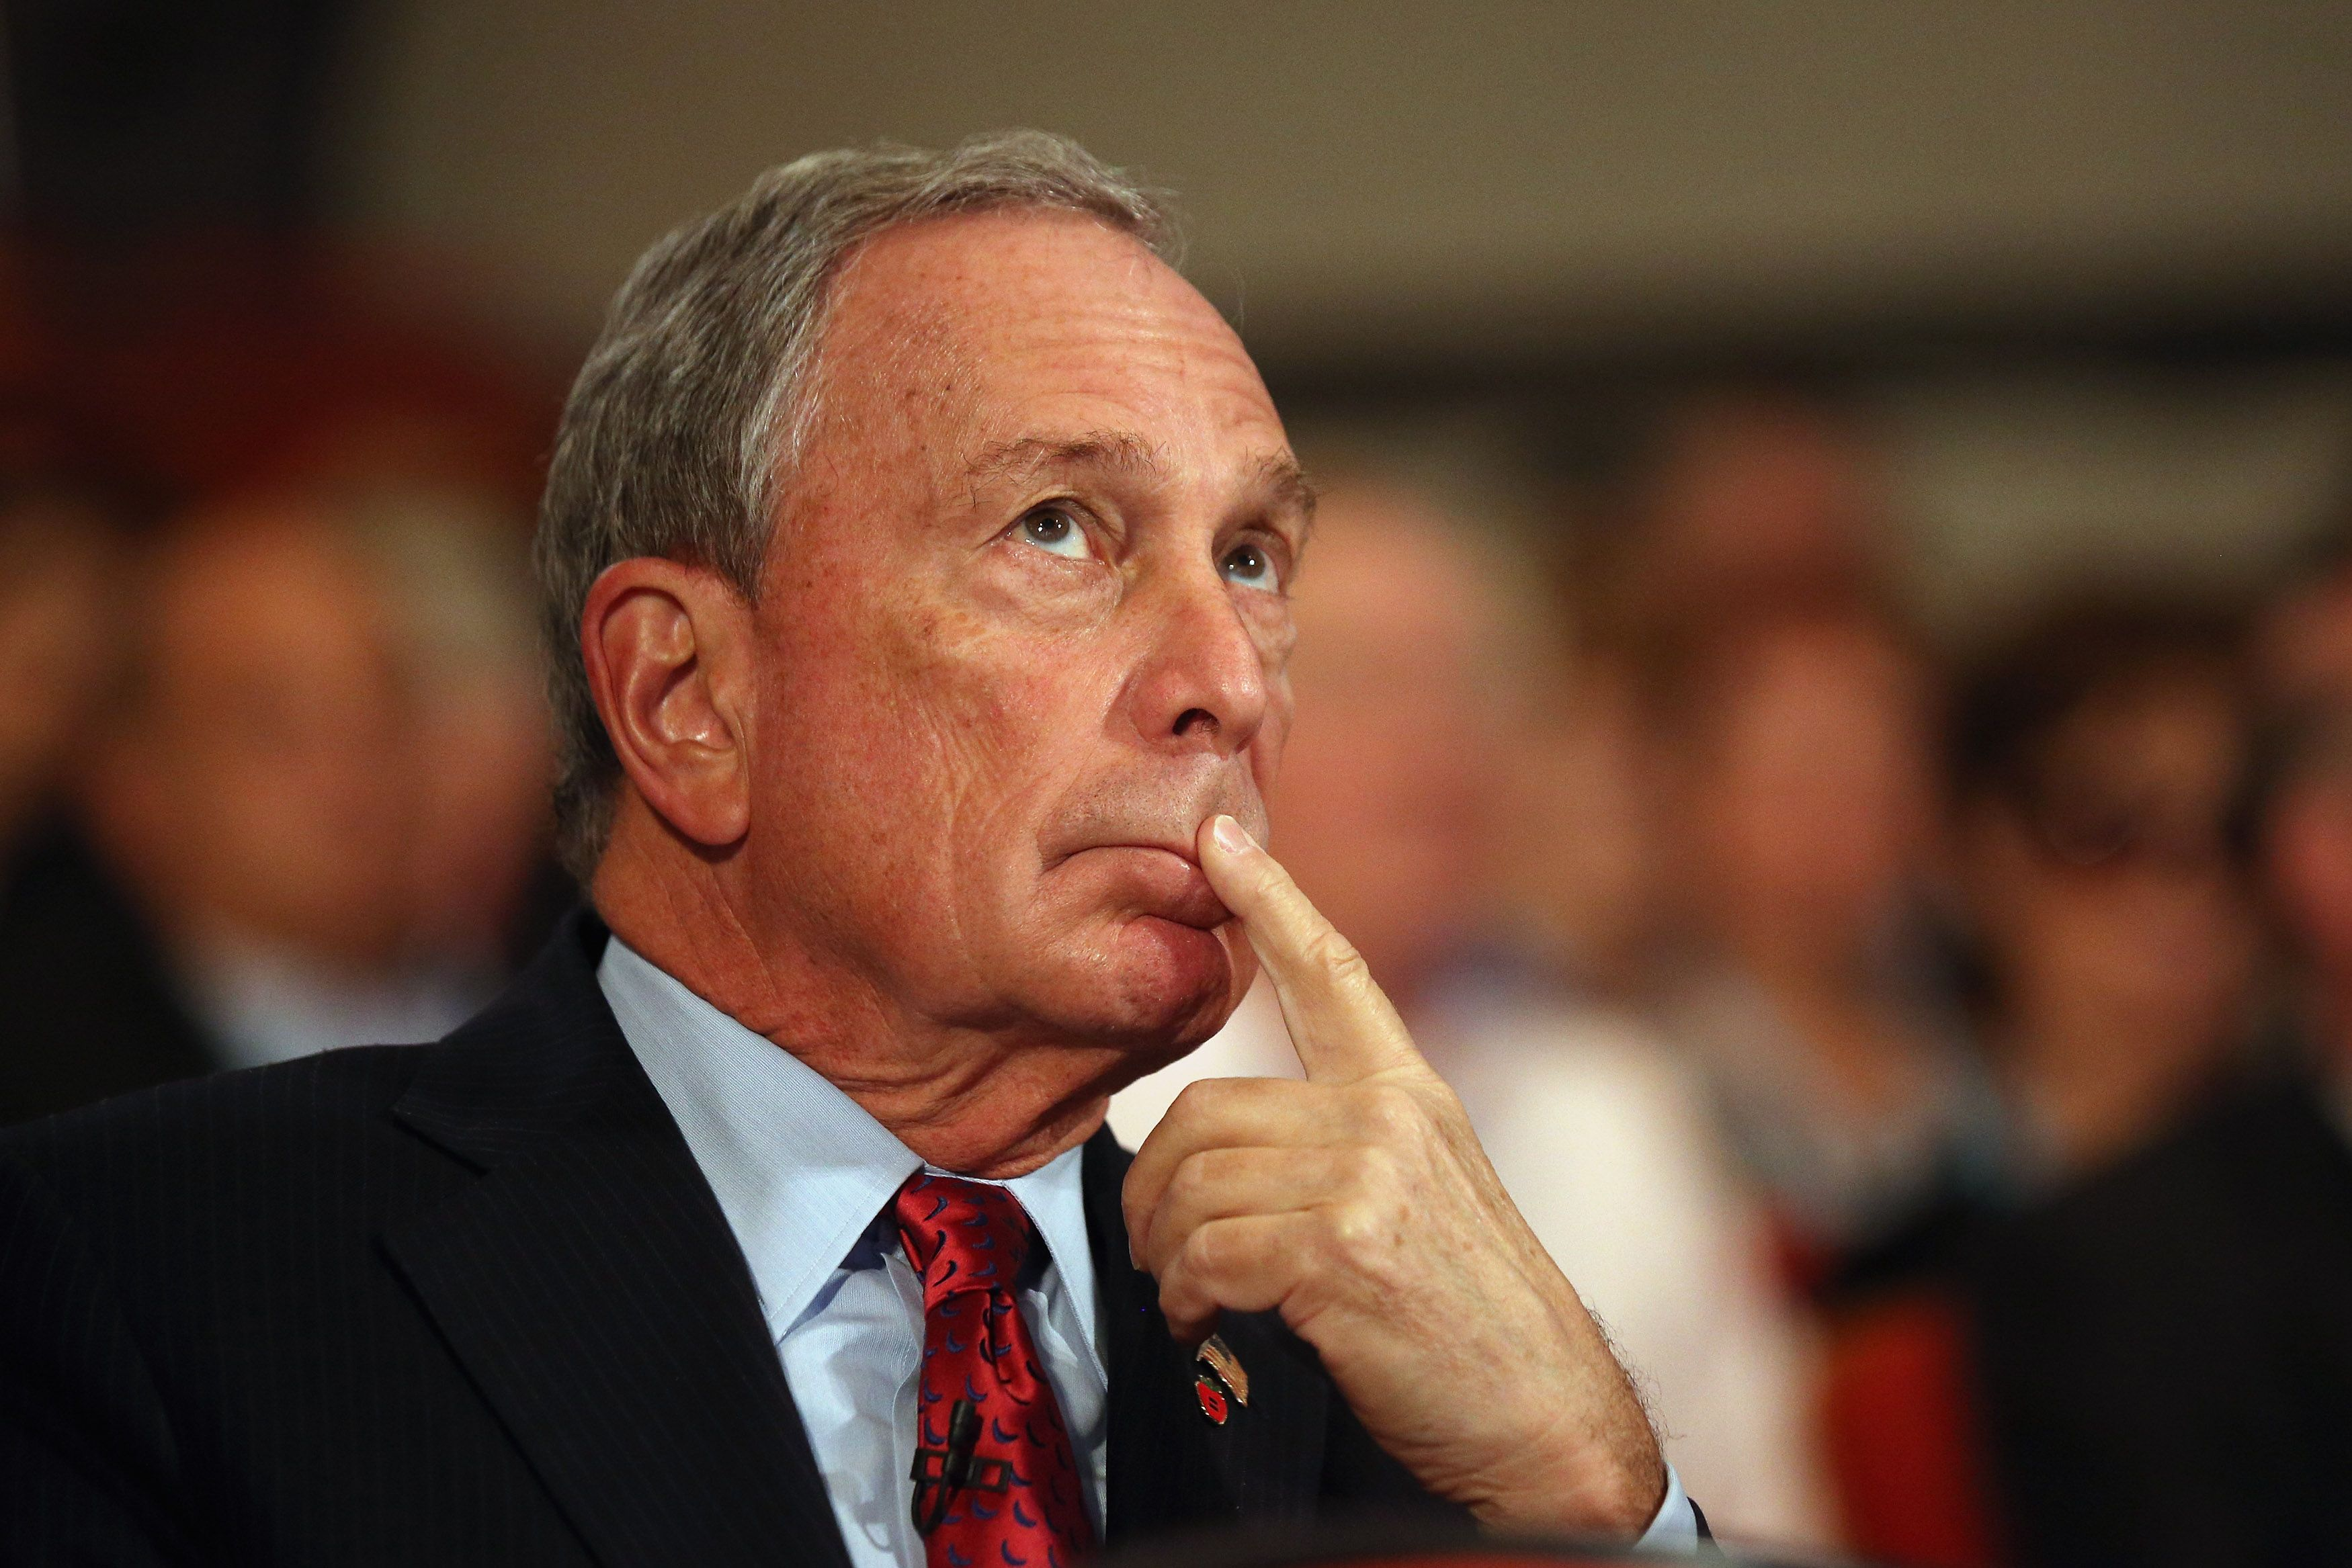 Just FYI, Here Are All the Bad Things Michael Bloomberg Has Reportedly Said About Women